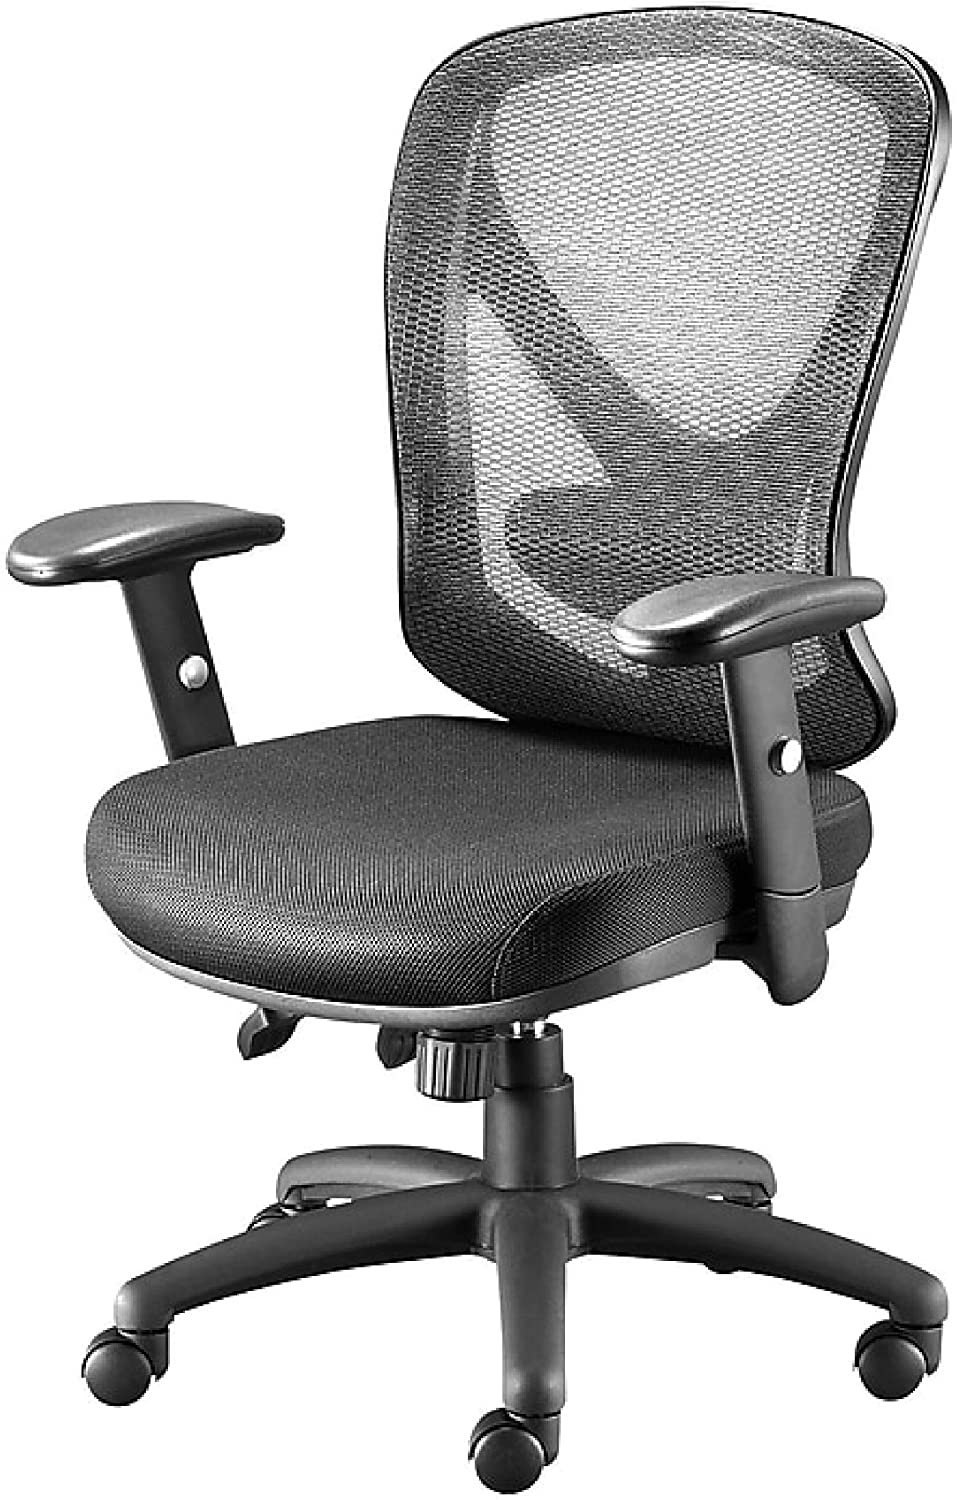 Staples Carder Mesh Back Fabric Computer and Desk Chair, Black (24115-CC)